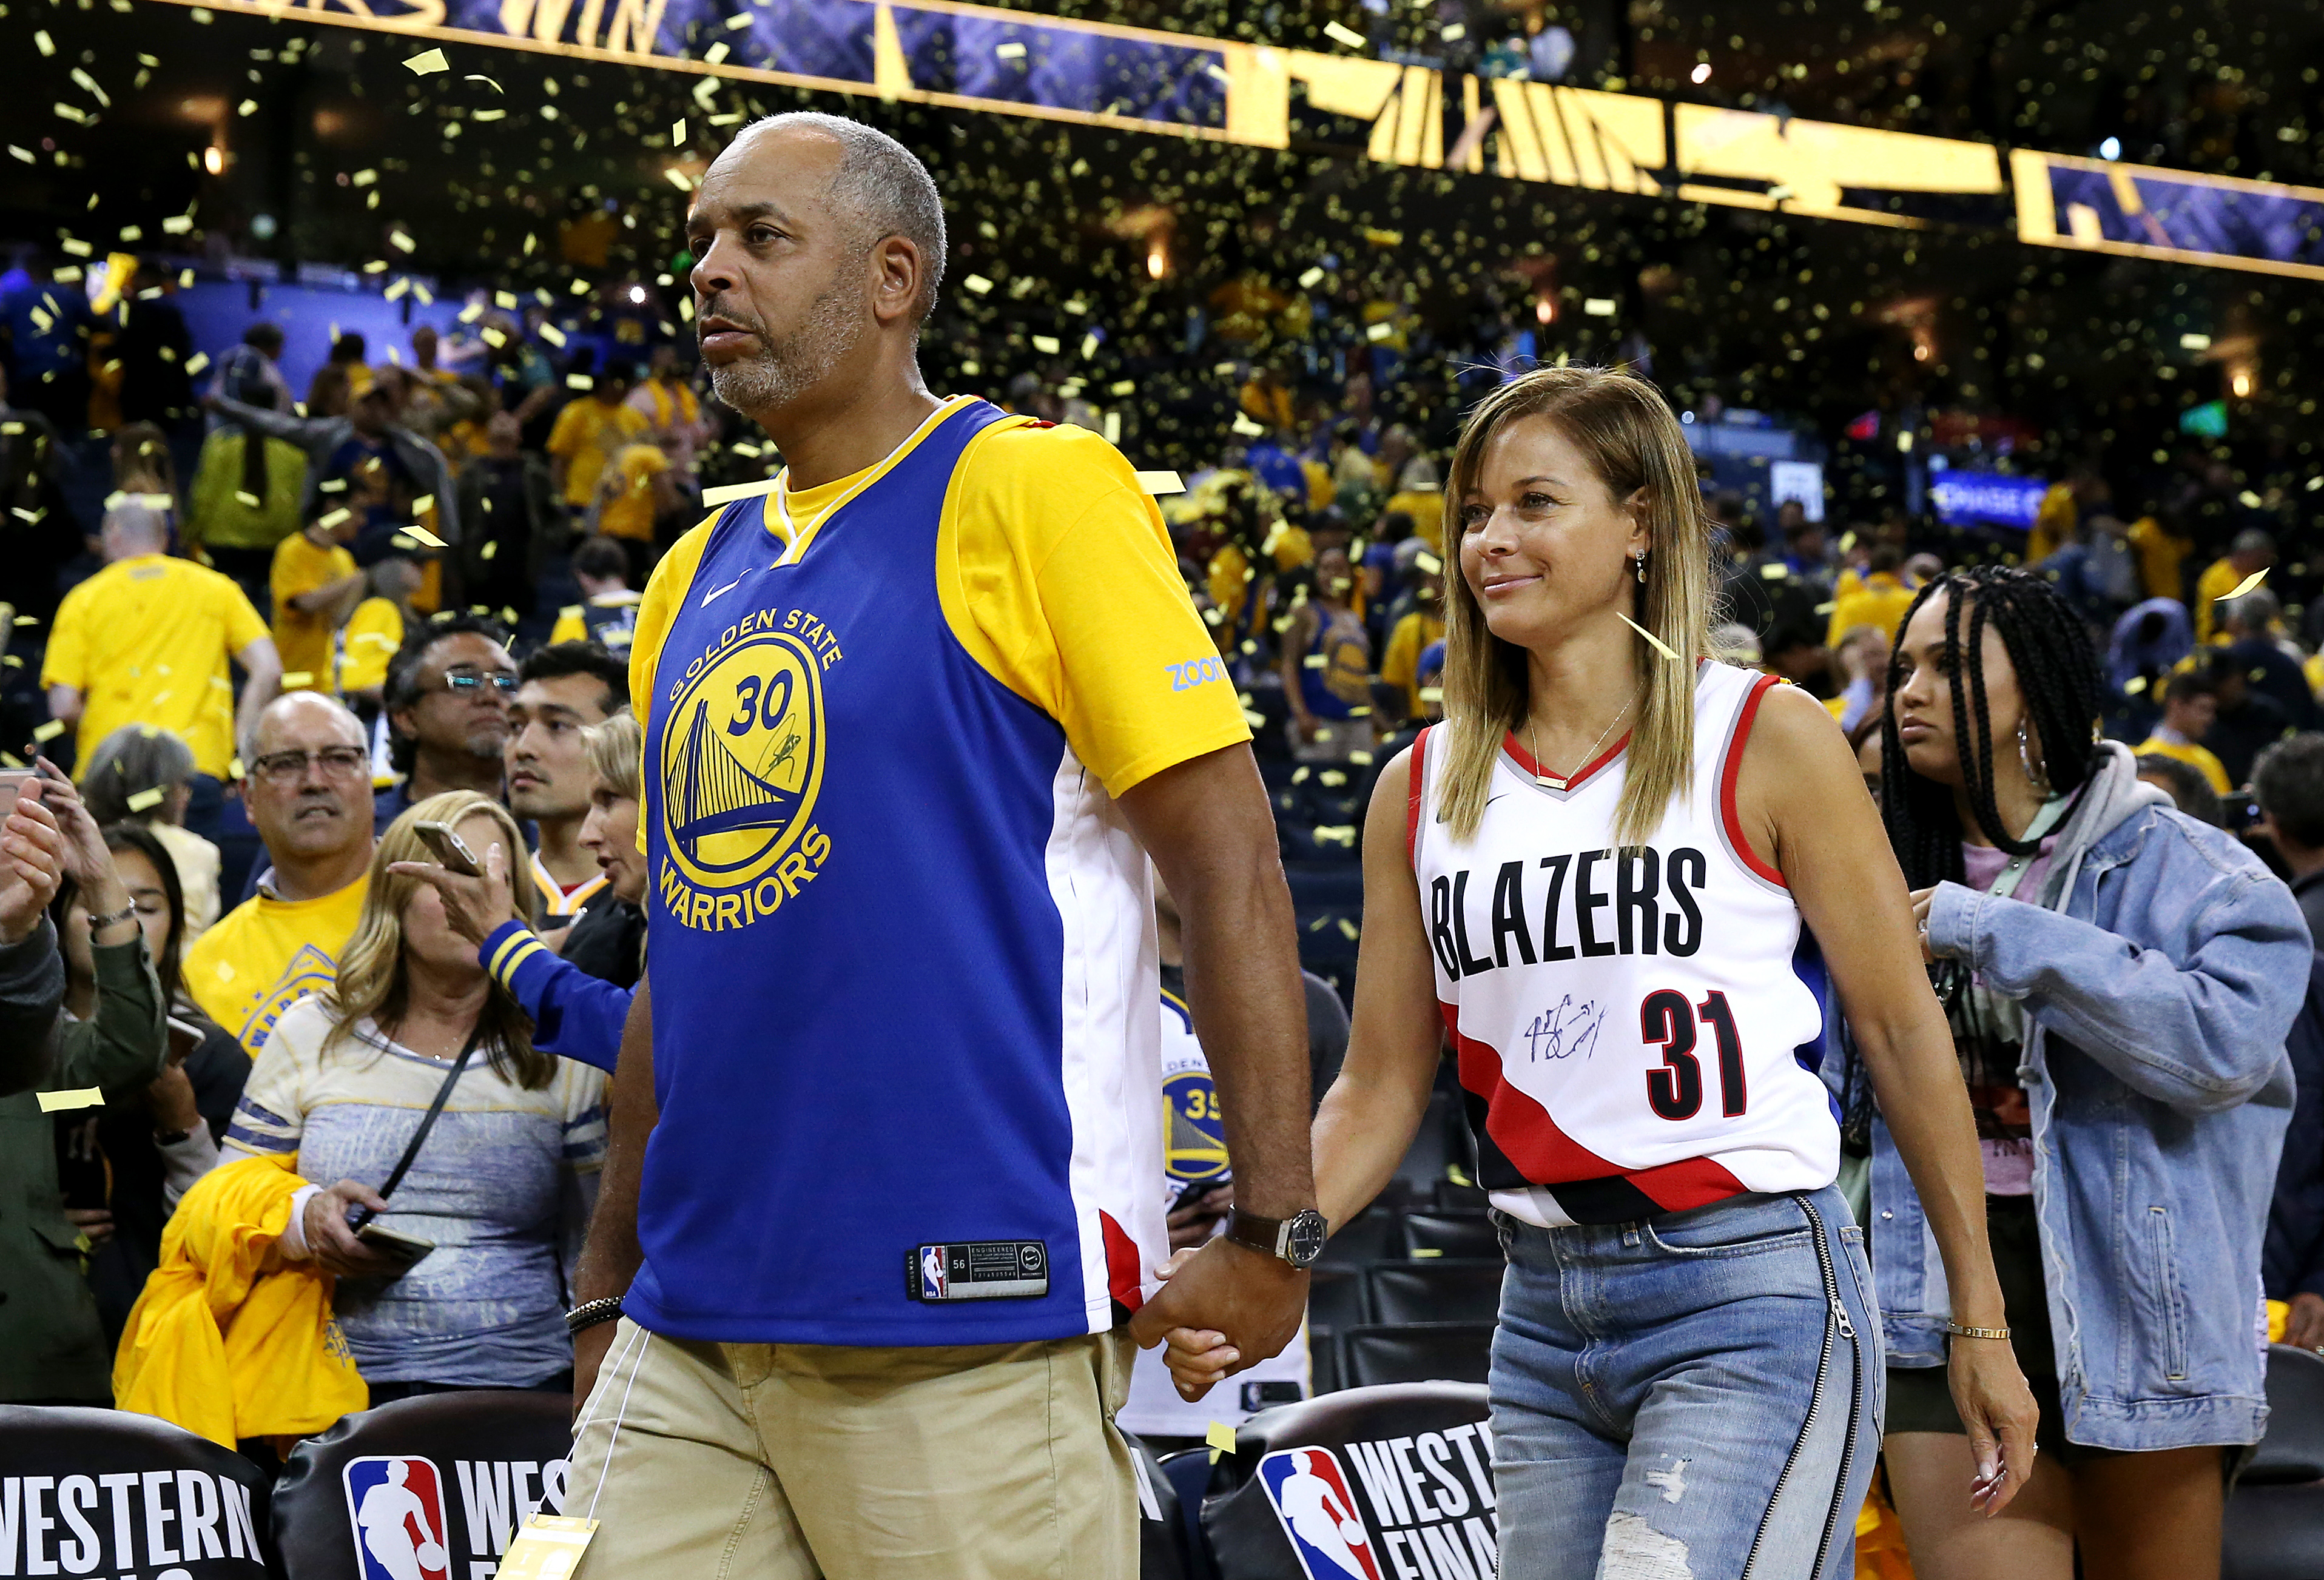 Dell Curry and Sonya Curry, parents of Stephen Curry #30 of the Golden State Warriors (not pictured) and Seth Curry #31 of the Portland Trail Blazers (not pictured) attend game one of the NBA Western Conference Finals at ORACLE Arena on May 14, 2019 in Oakland, California